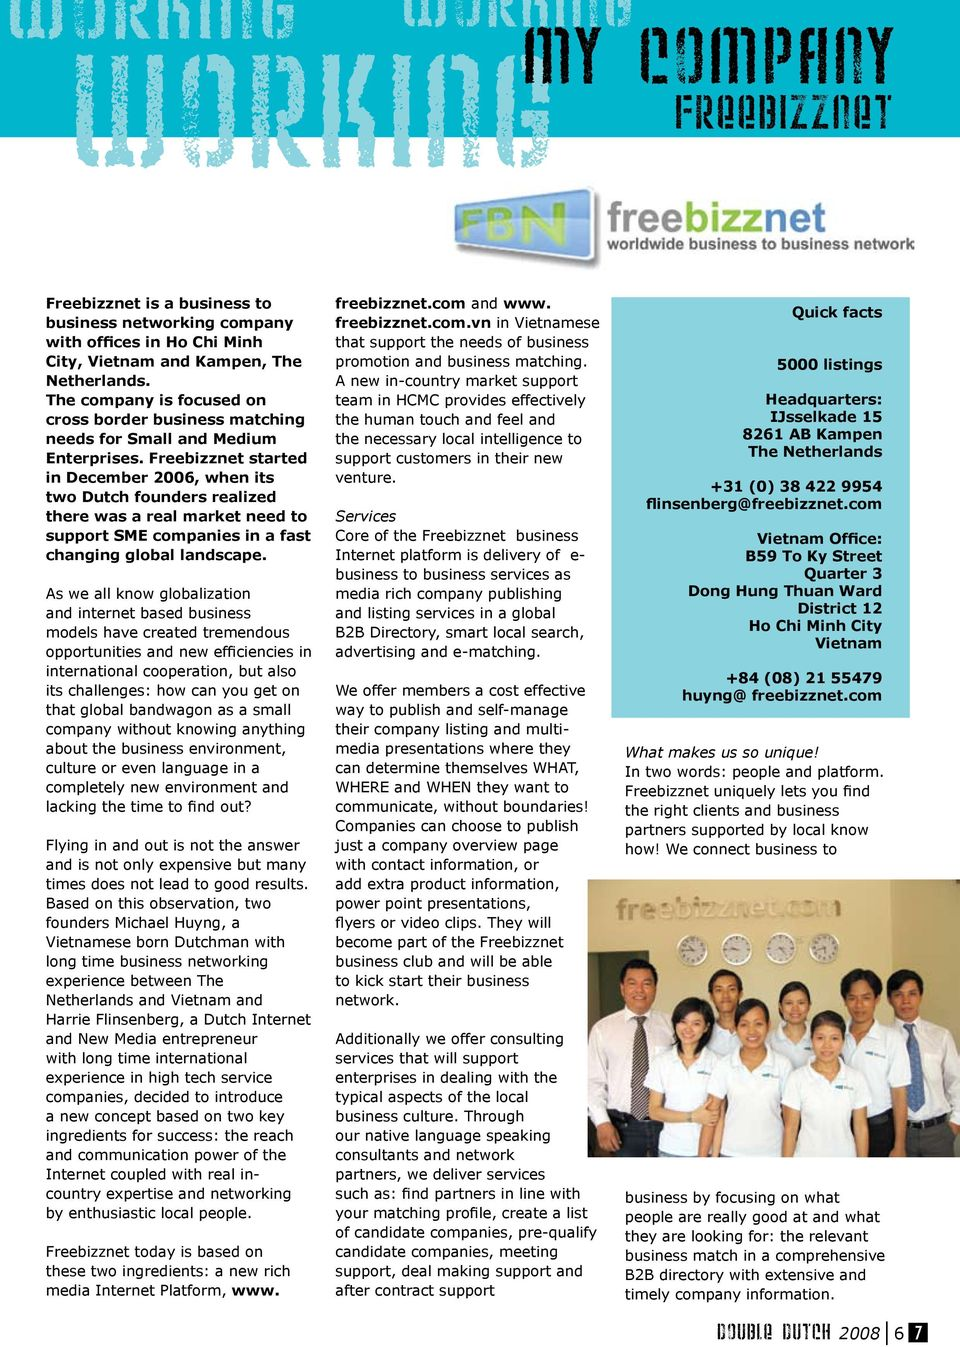 Freebizznet started in December 2006, when its two Dutch founders realized there was a real market need to support SME companies in a fast changing global landscape.